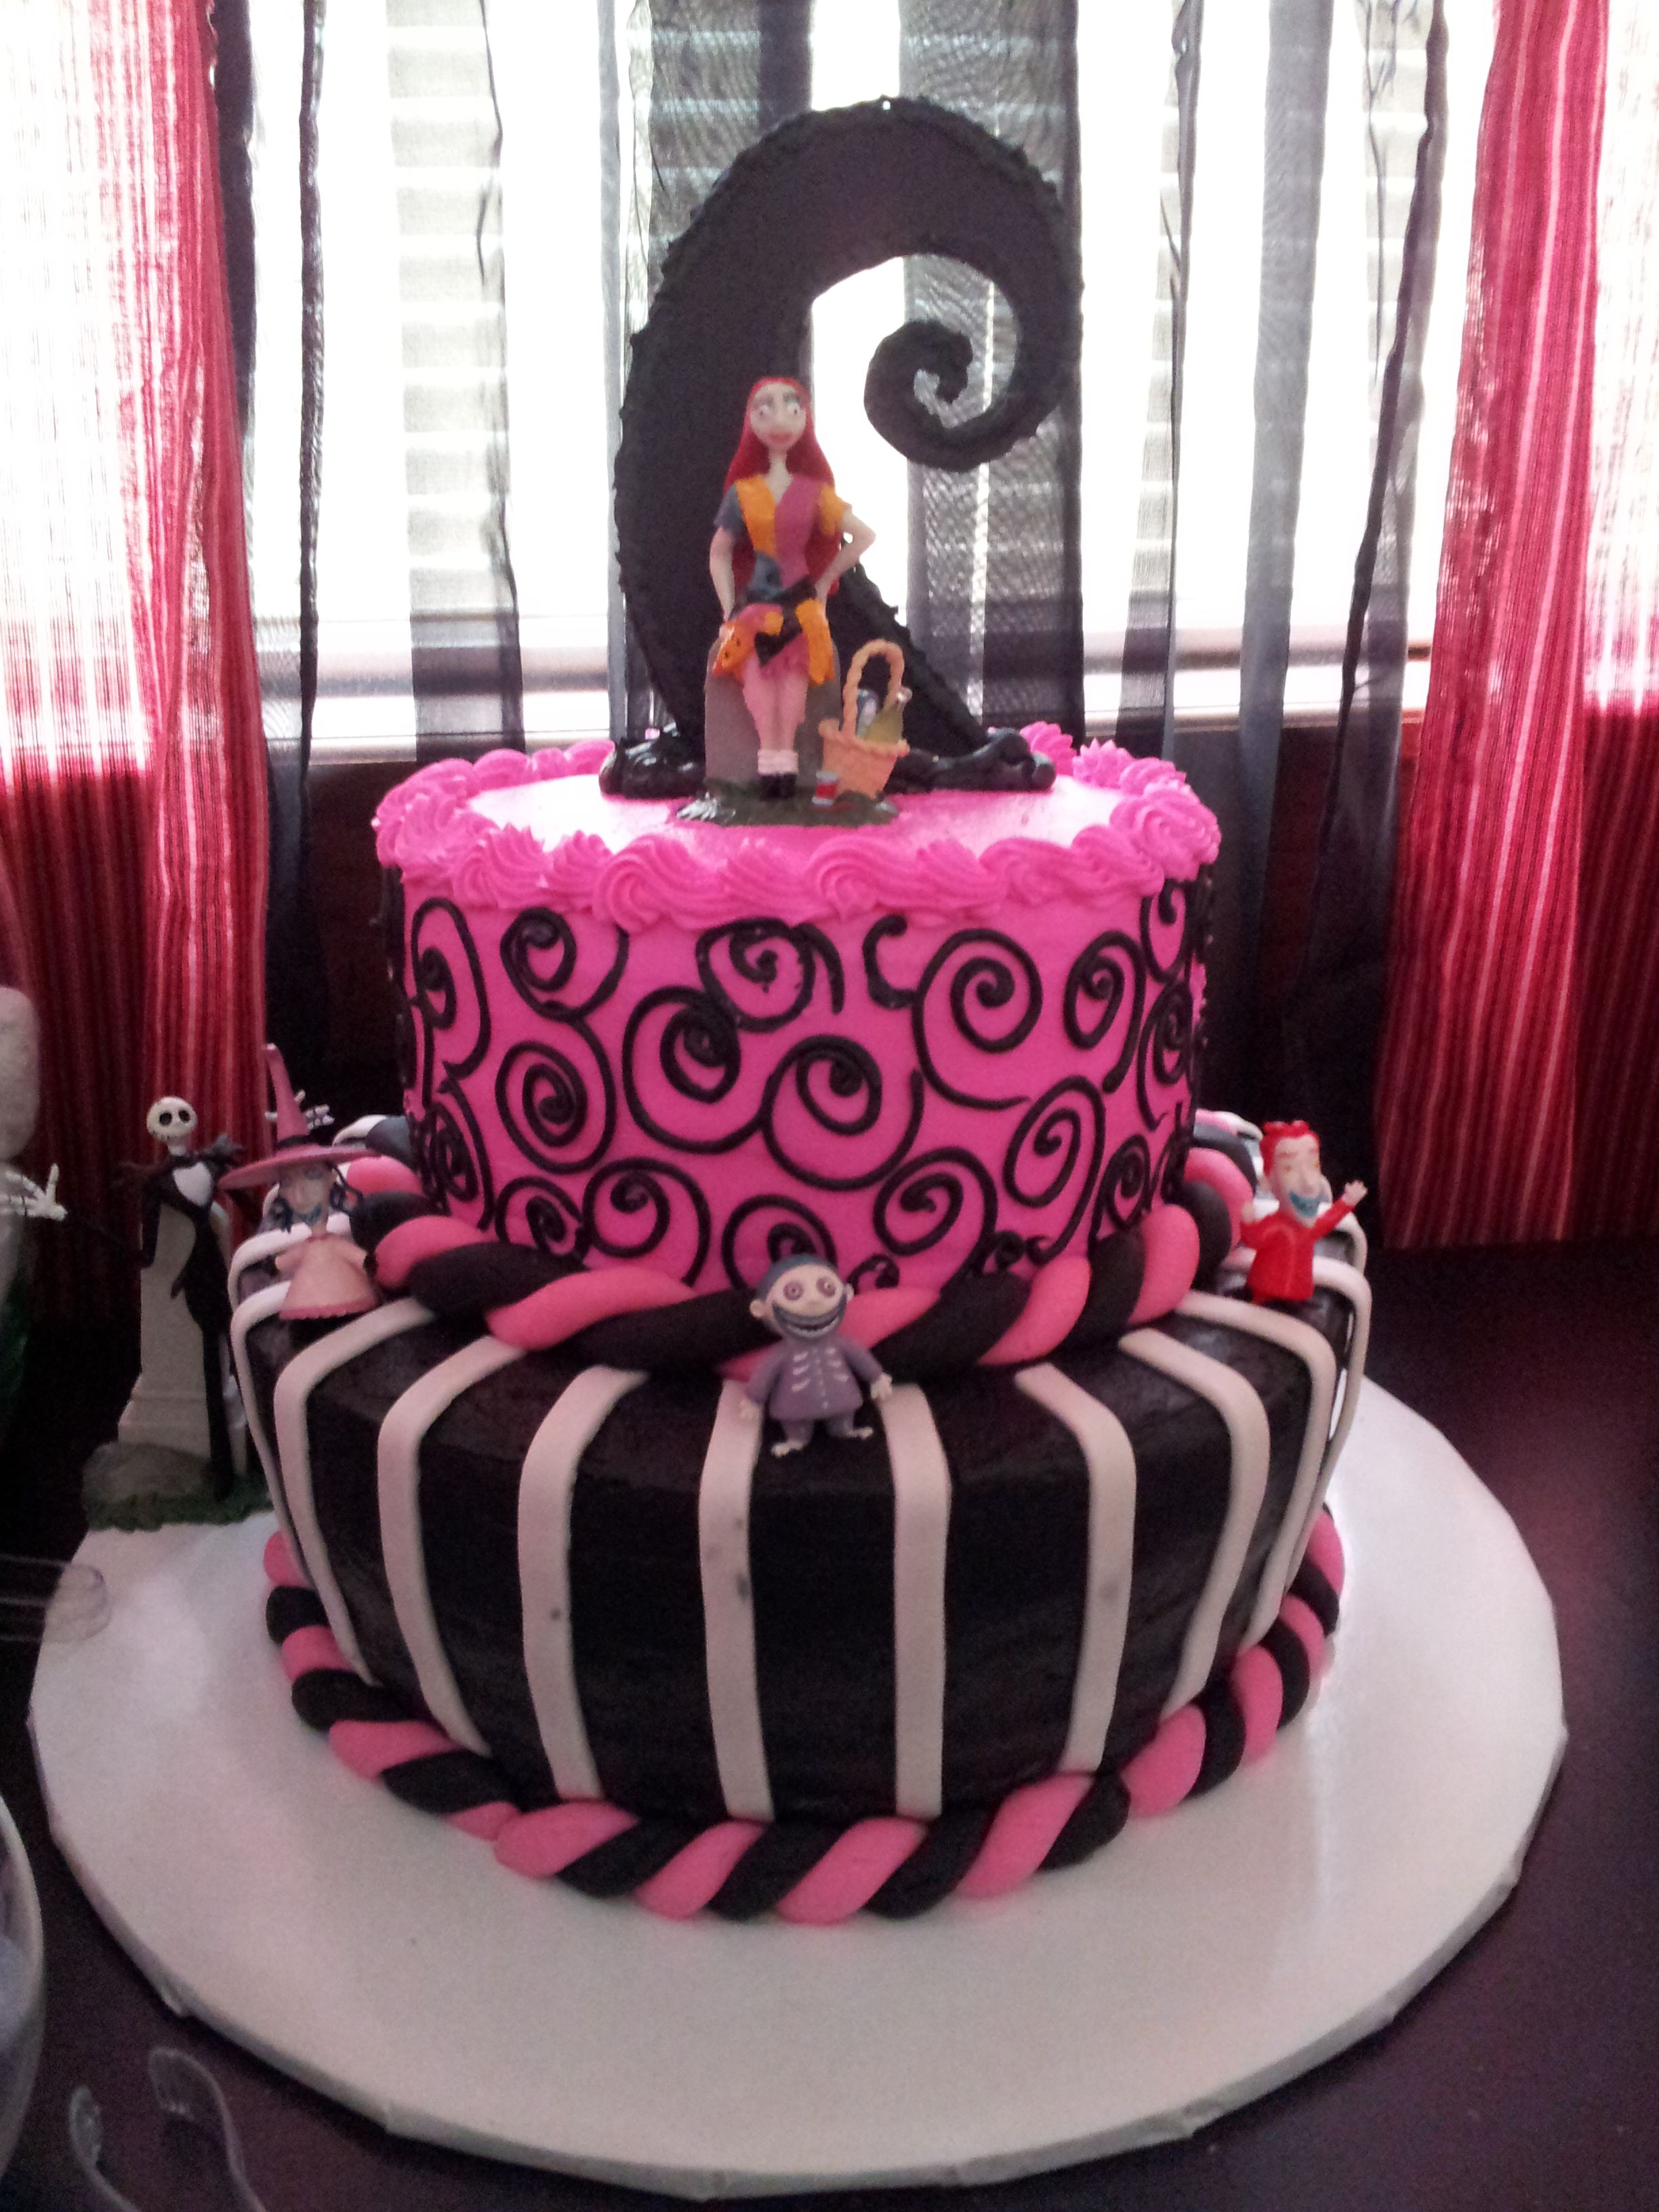 Nightmare before Christmas Baby shower cake | Baby girl ideas ...